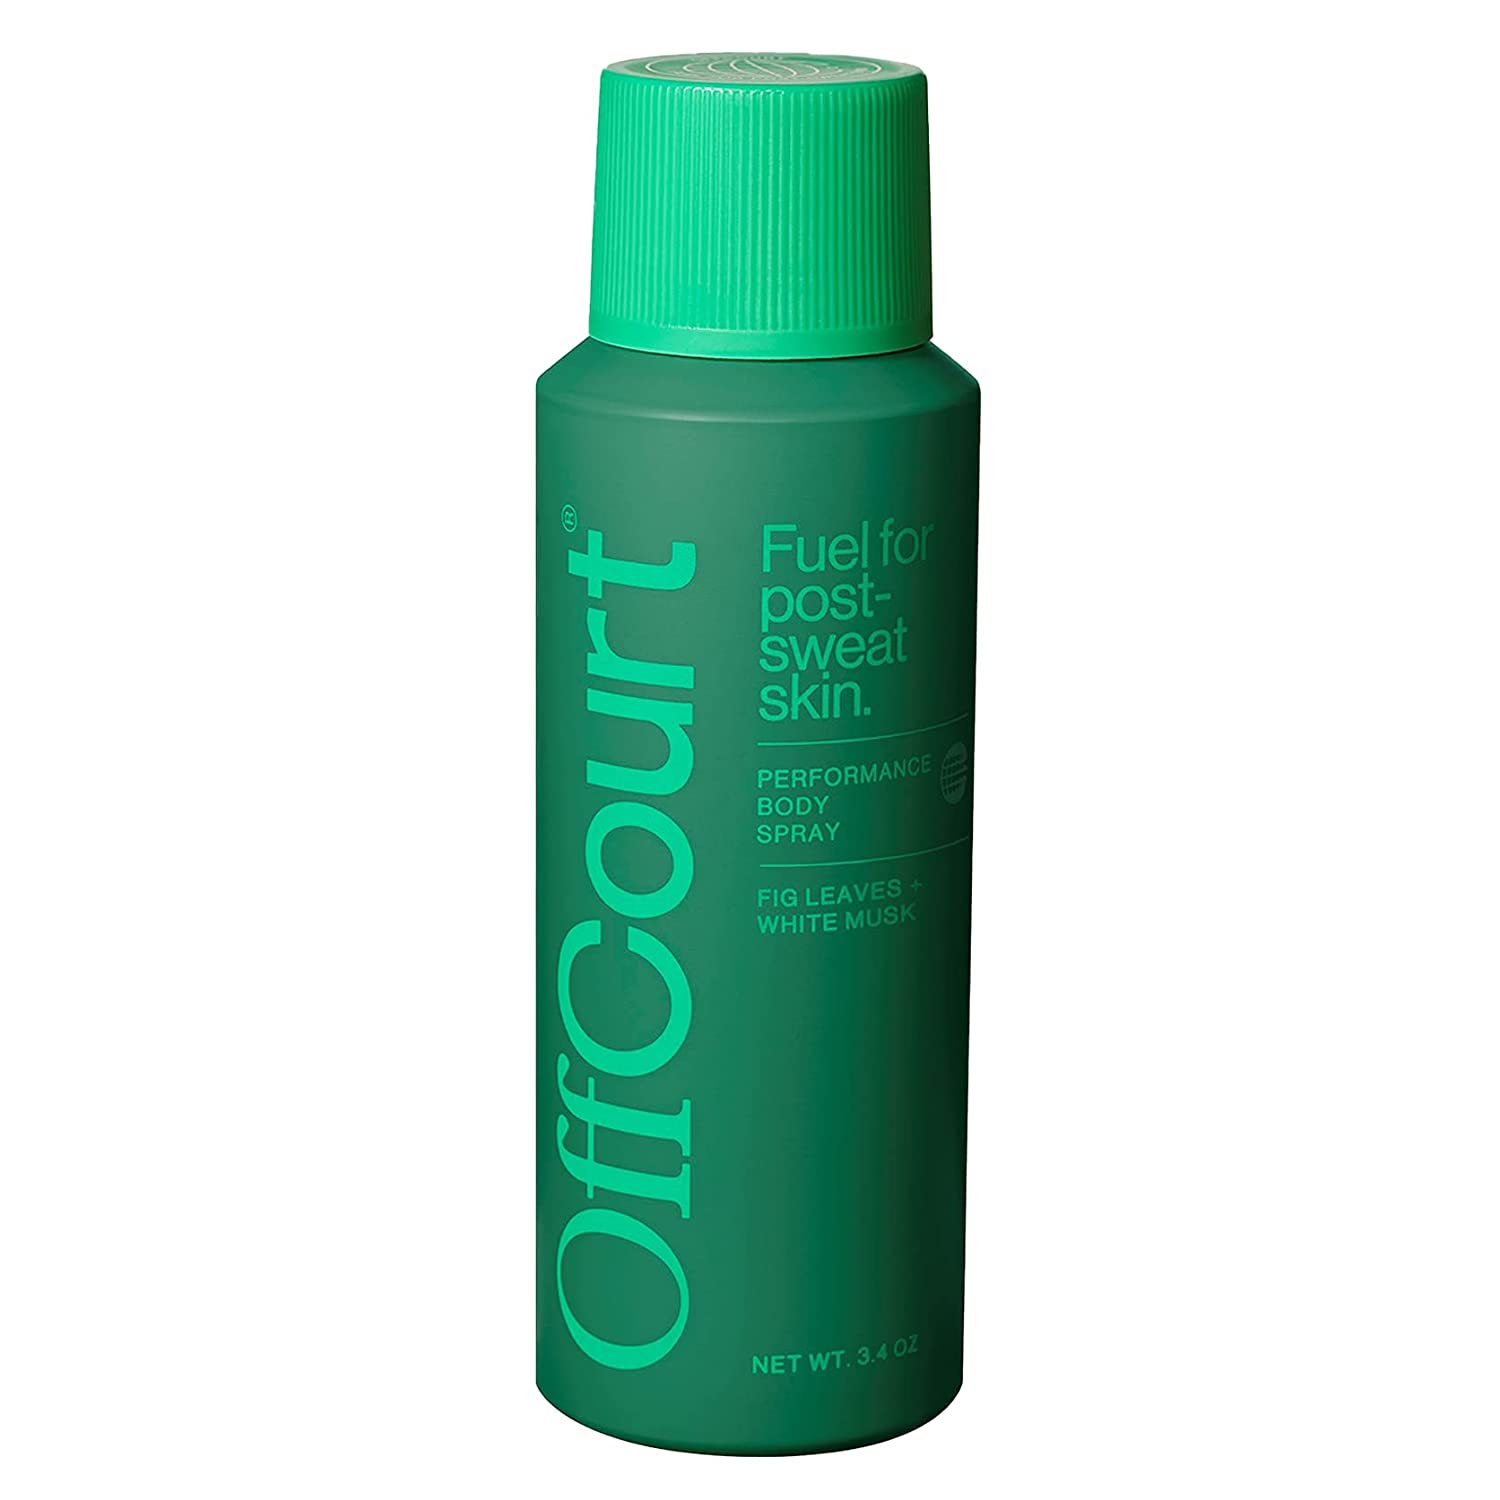 OffCourt Body Spray for Men - Aluminum Free - Powerful Prebiotics to Fight Body Odor - Elevated Cologne to Last All Day – Men's Deodorant Spray with Fig Leaves Scent - 3.4 oz